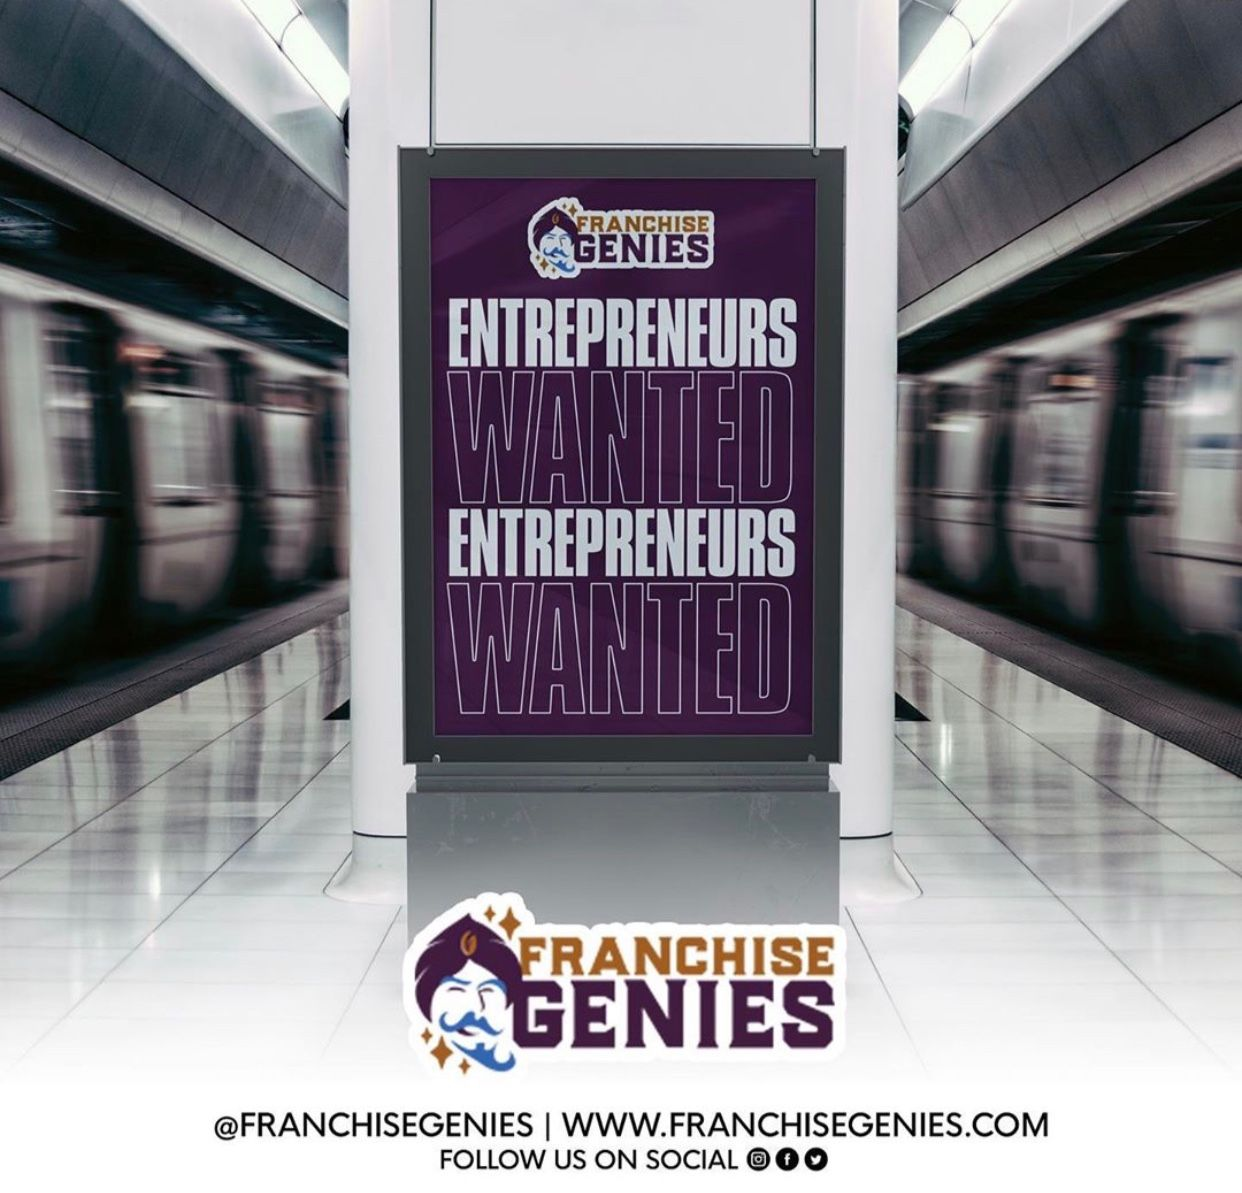 Franchise Genies Continues to Expand Portfolio of Emerging Franchises